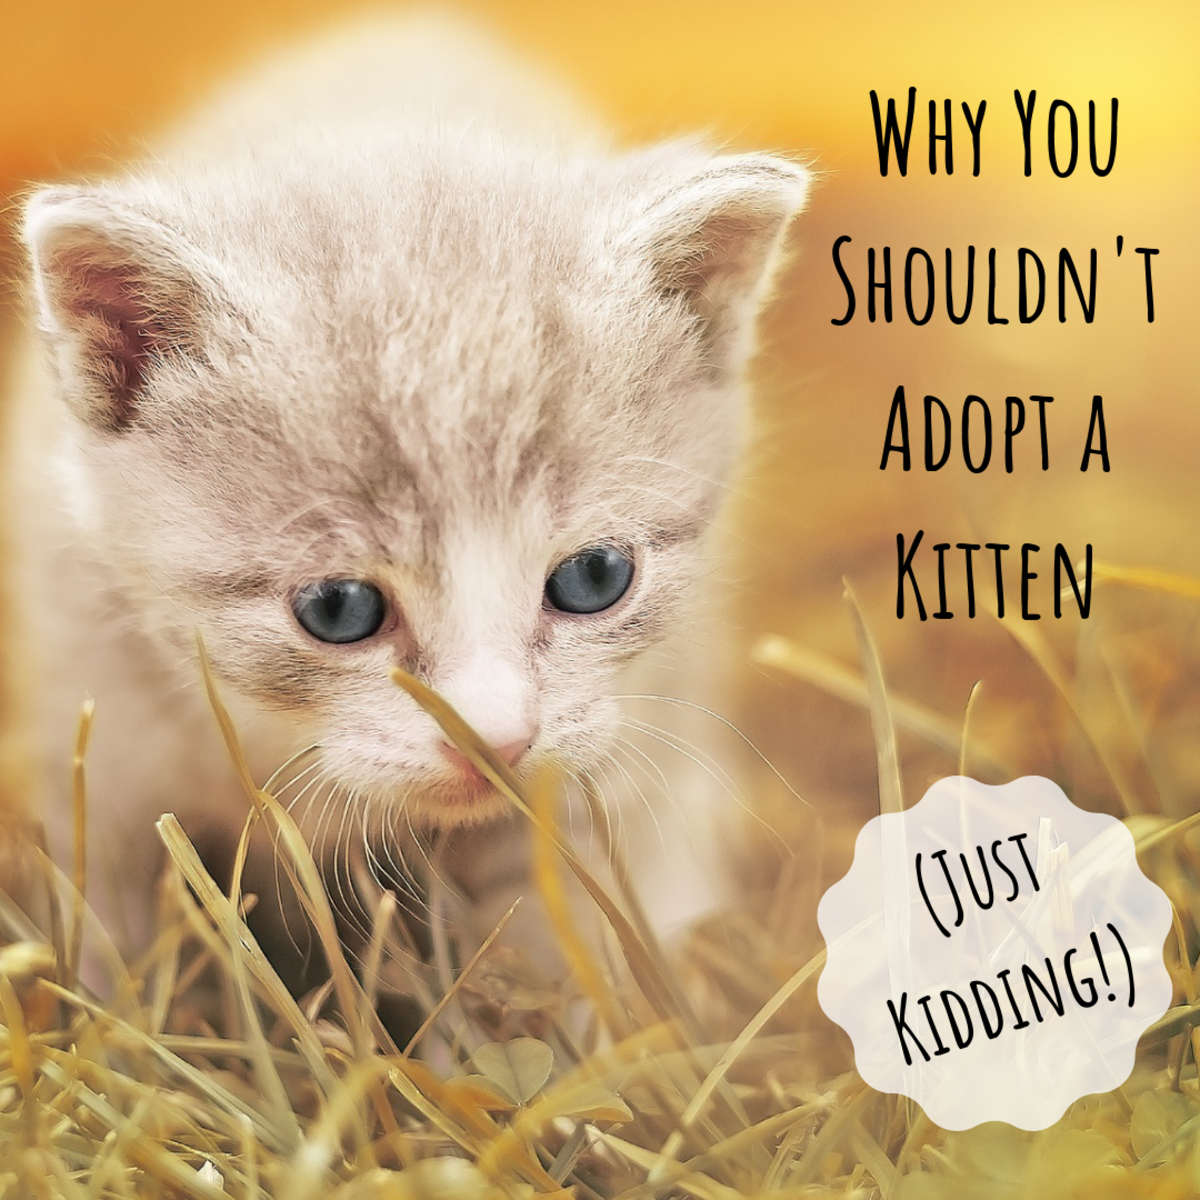 9 Reasons Why You Shouldn't Adopt a Kitten (or Should You?)